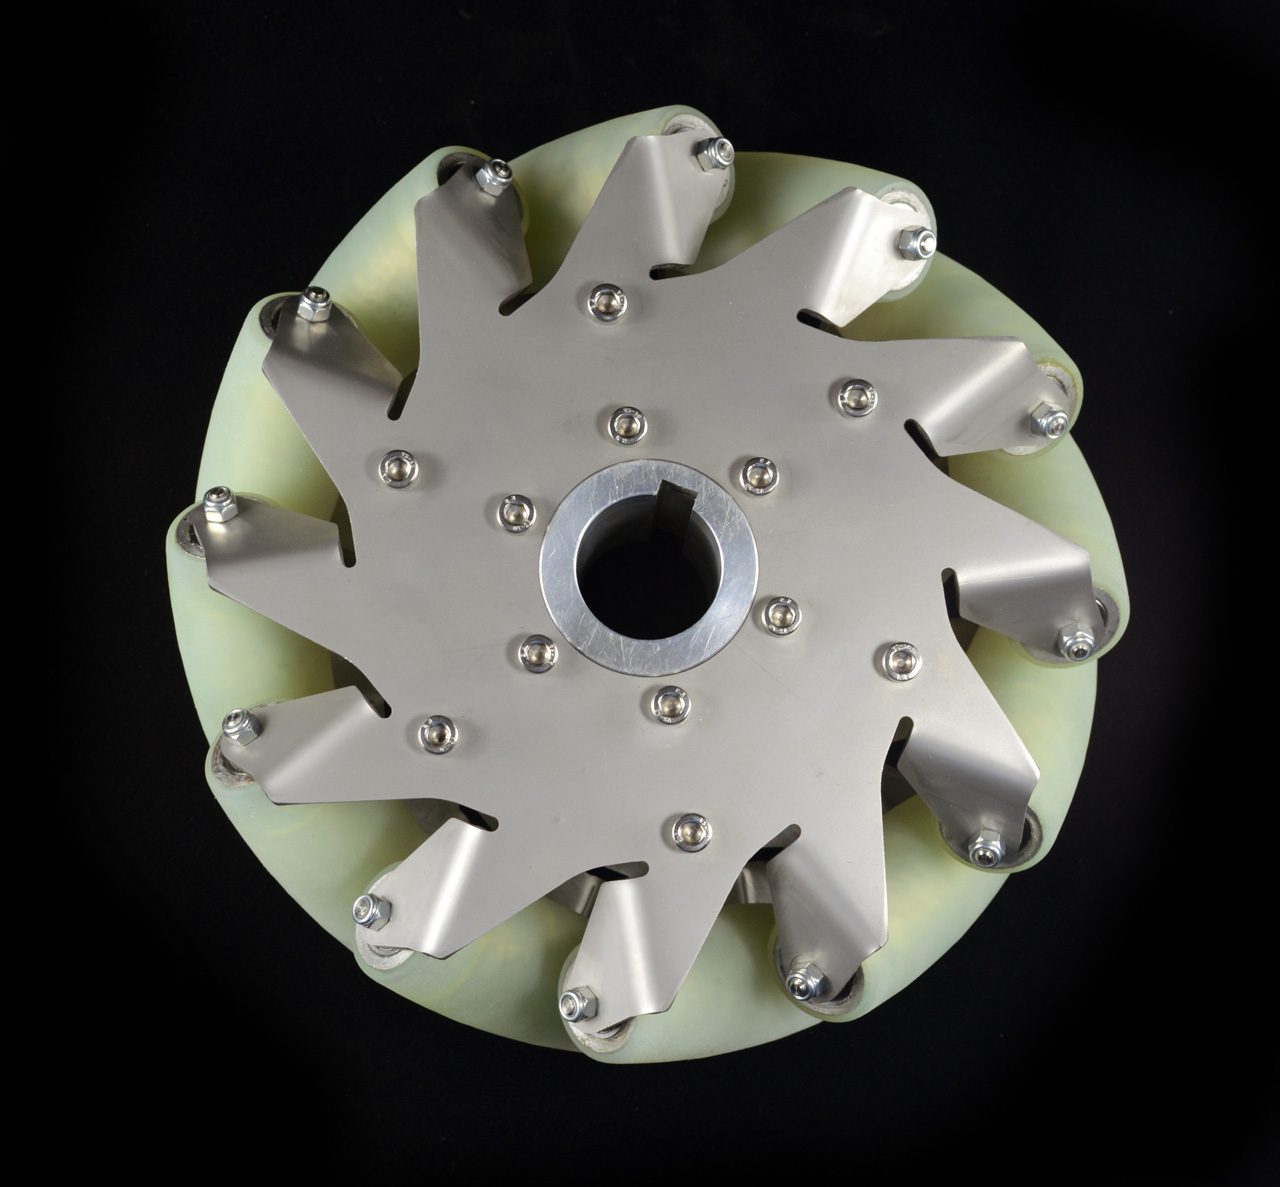 8-Inch-Industrial-wheel-Mecanum-wheel-with-12-PU-Roller-Right-14177-1